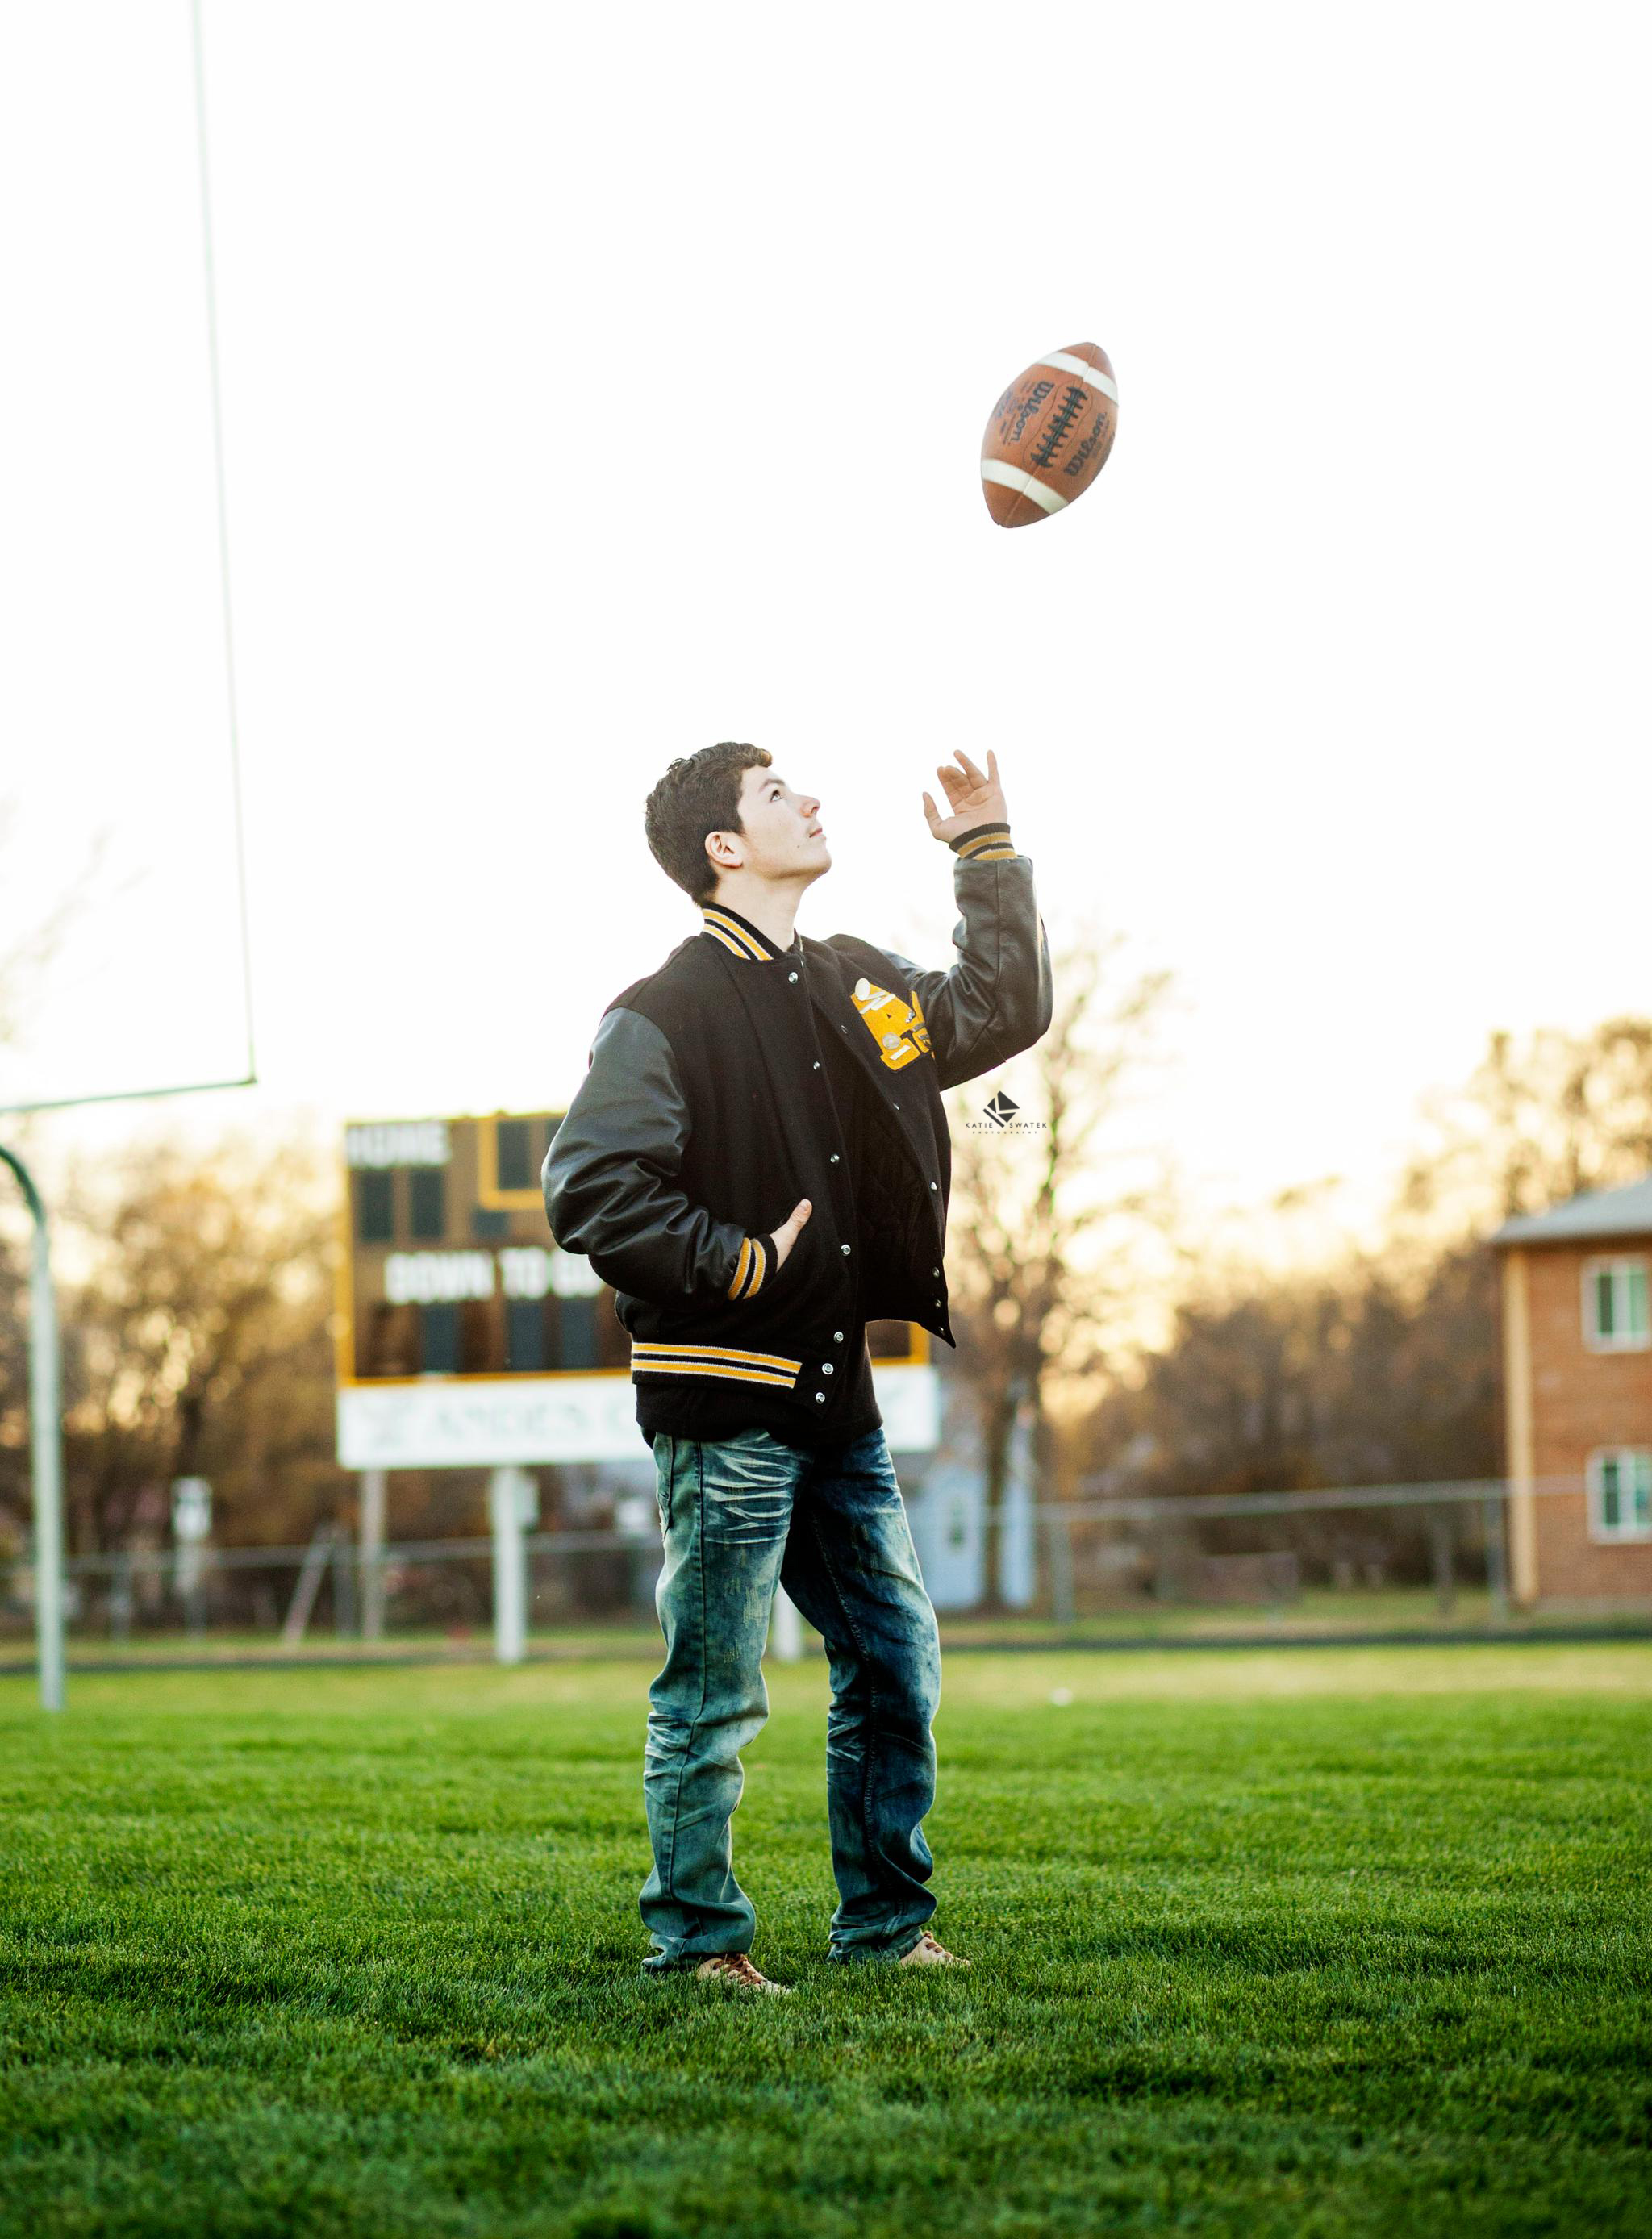 black haired senior guy in a letterman jacket standing on a football field tossing a football in the air